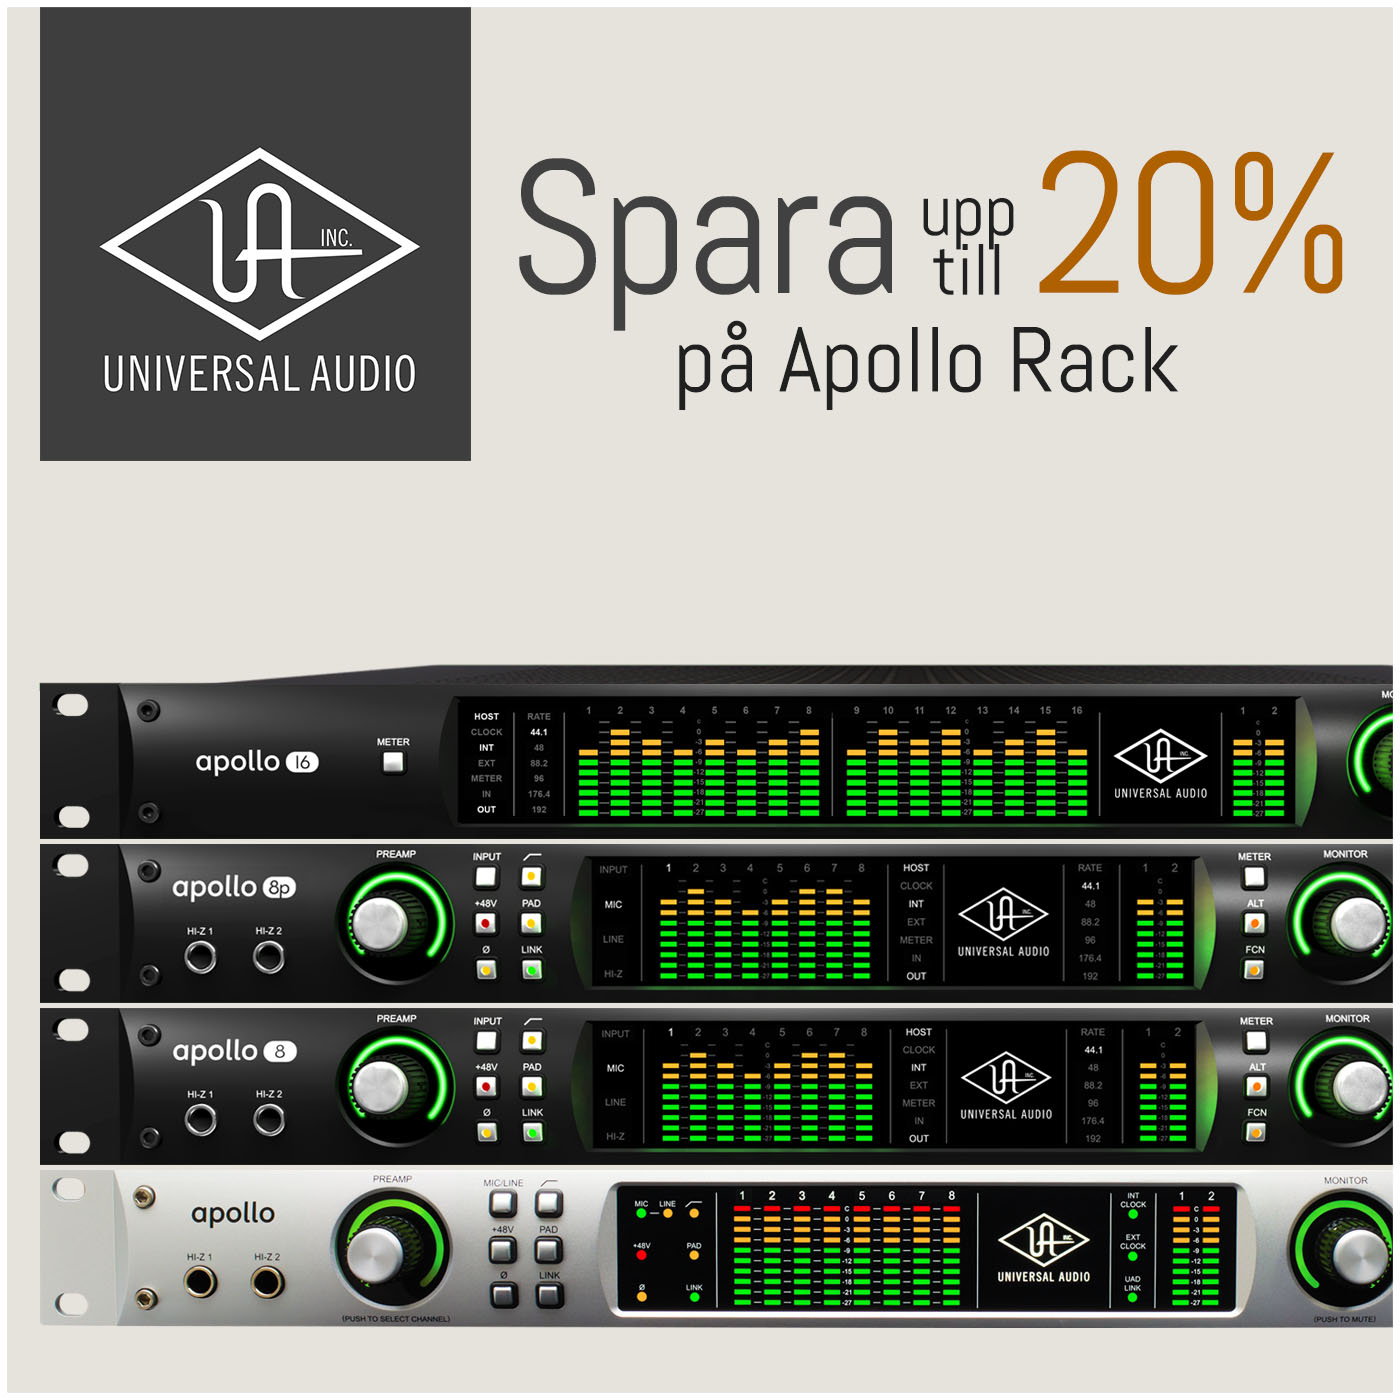 Universal Audio kampanj – Spara 20% på Apollo Rack